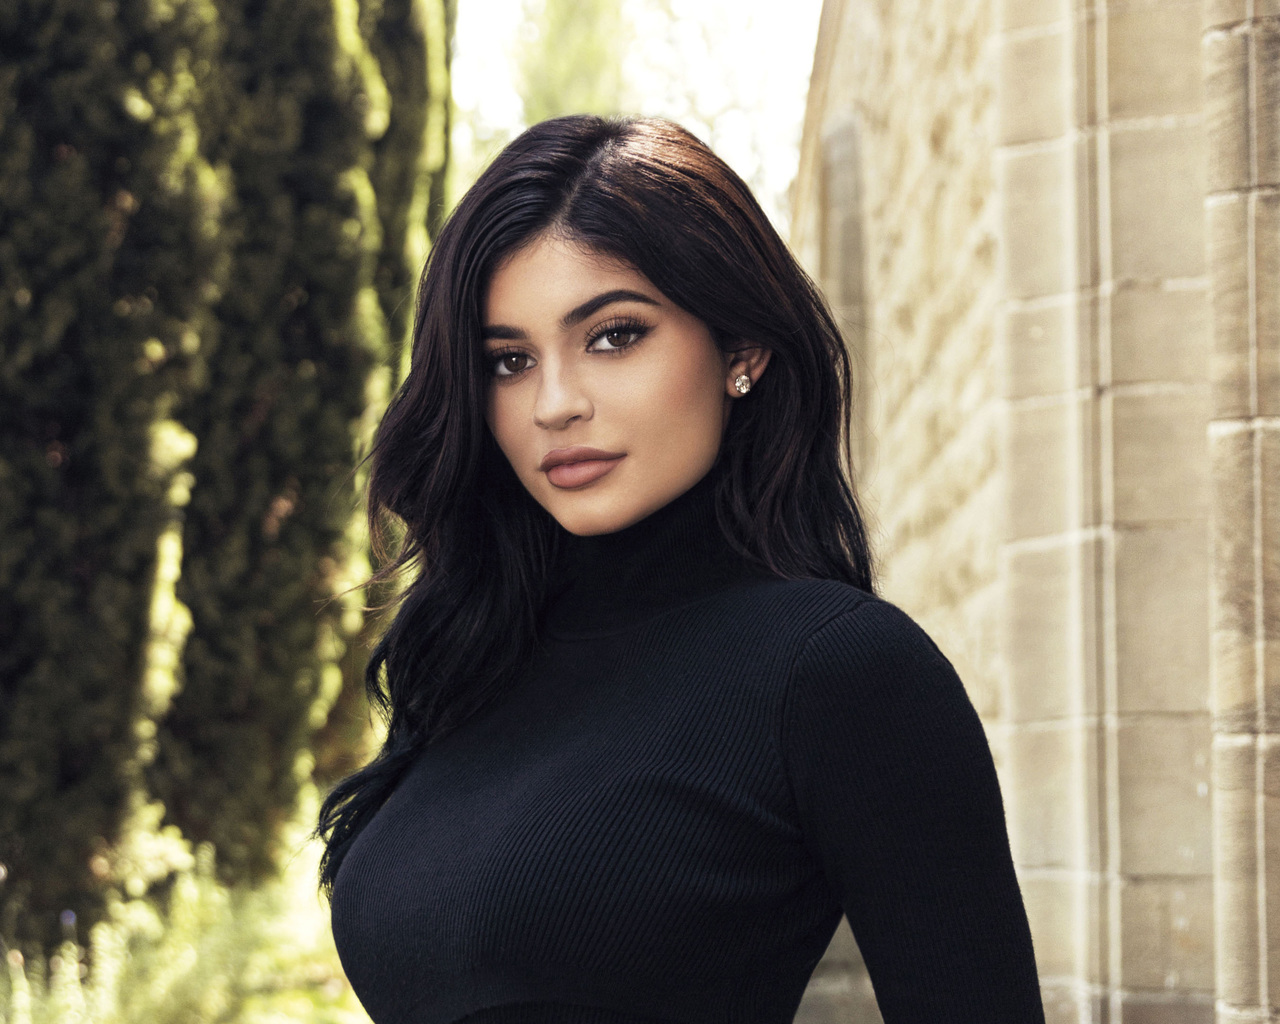 kylie-jenner-wearing-black-top-2018-zo.jpg